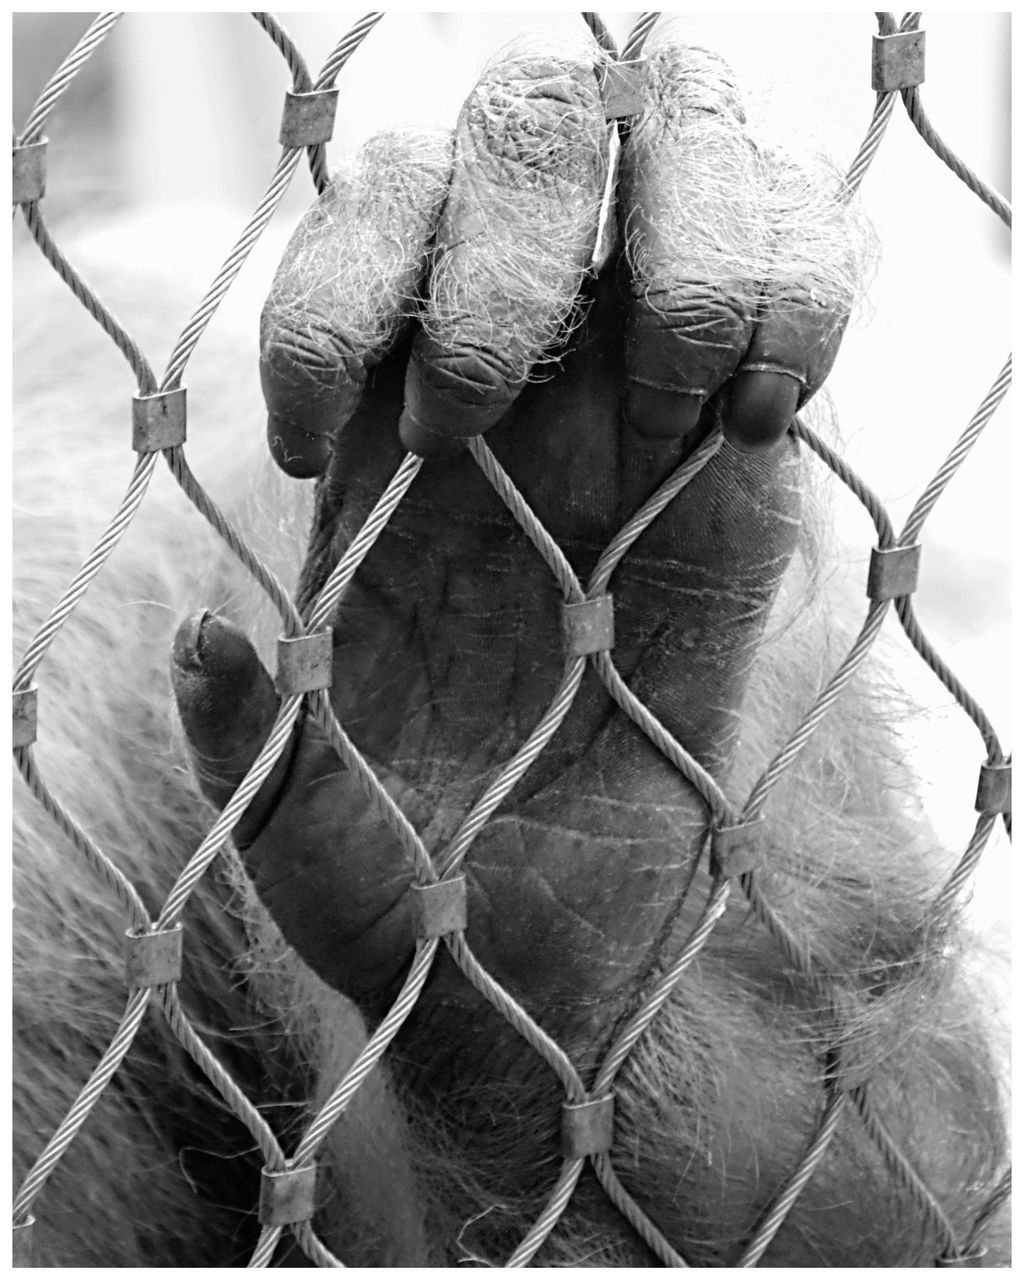 CLOSE-UP OF BARBED WIRE FENCE WITH METAL GRATE IN CHAINLINK